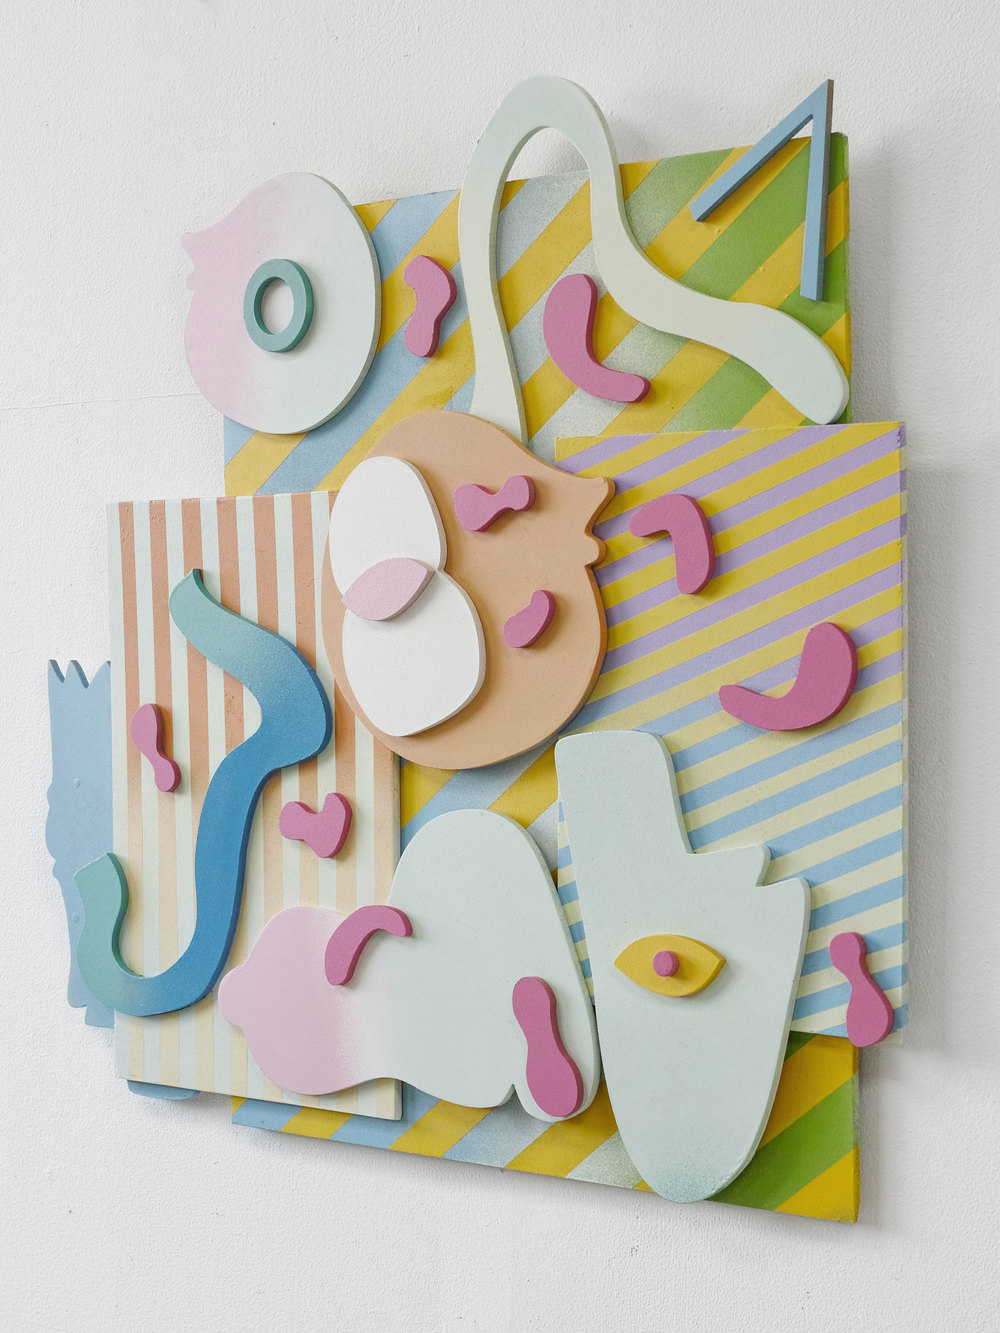 gregory c. brunet // cut/copy 08 // spray paint on mdf //dimensions variable // 2015